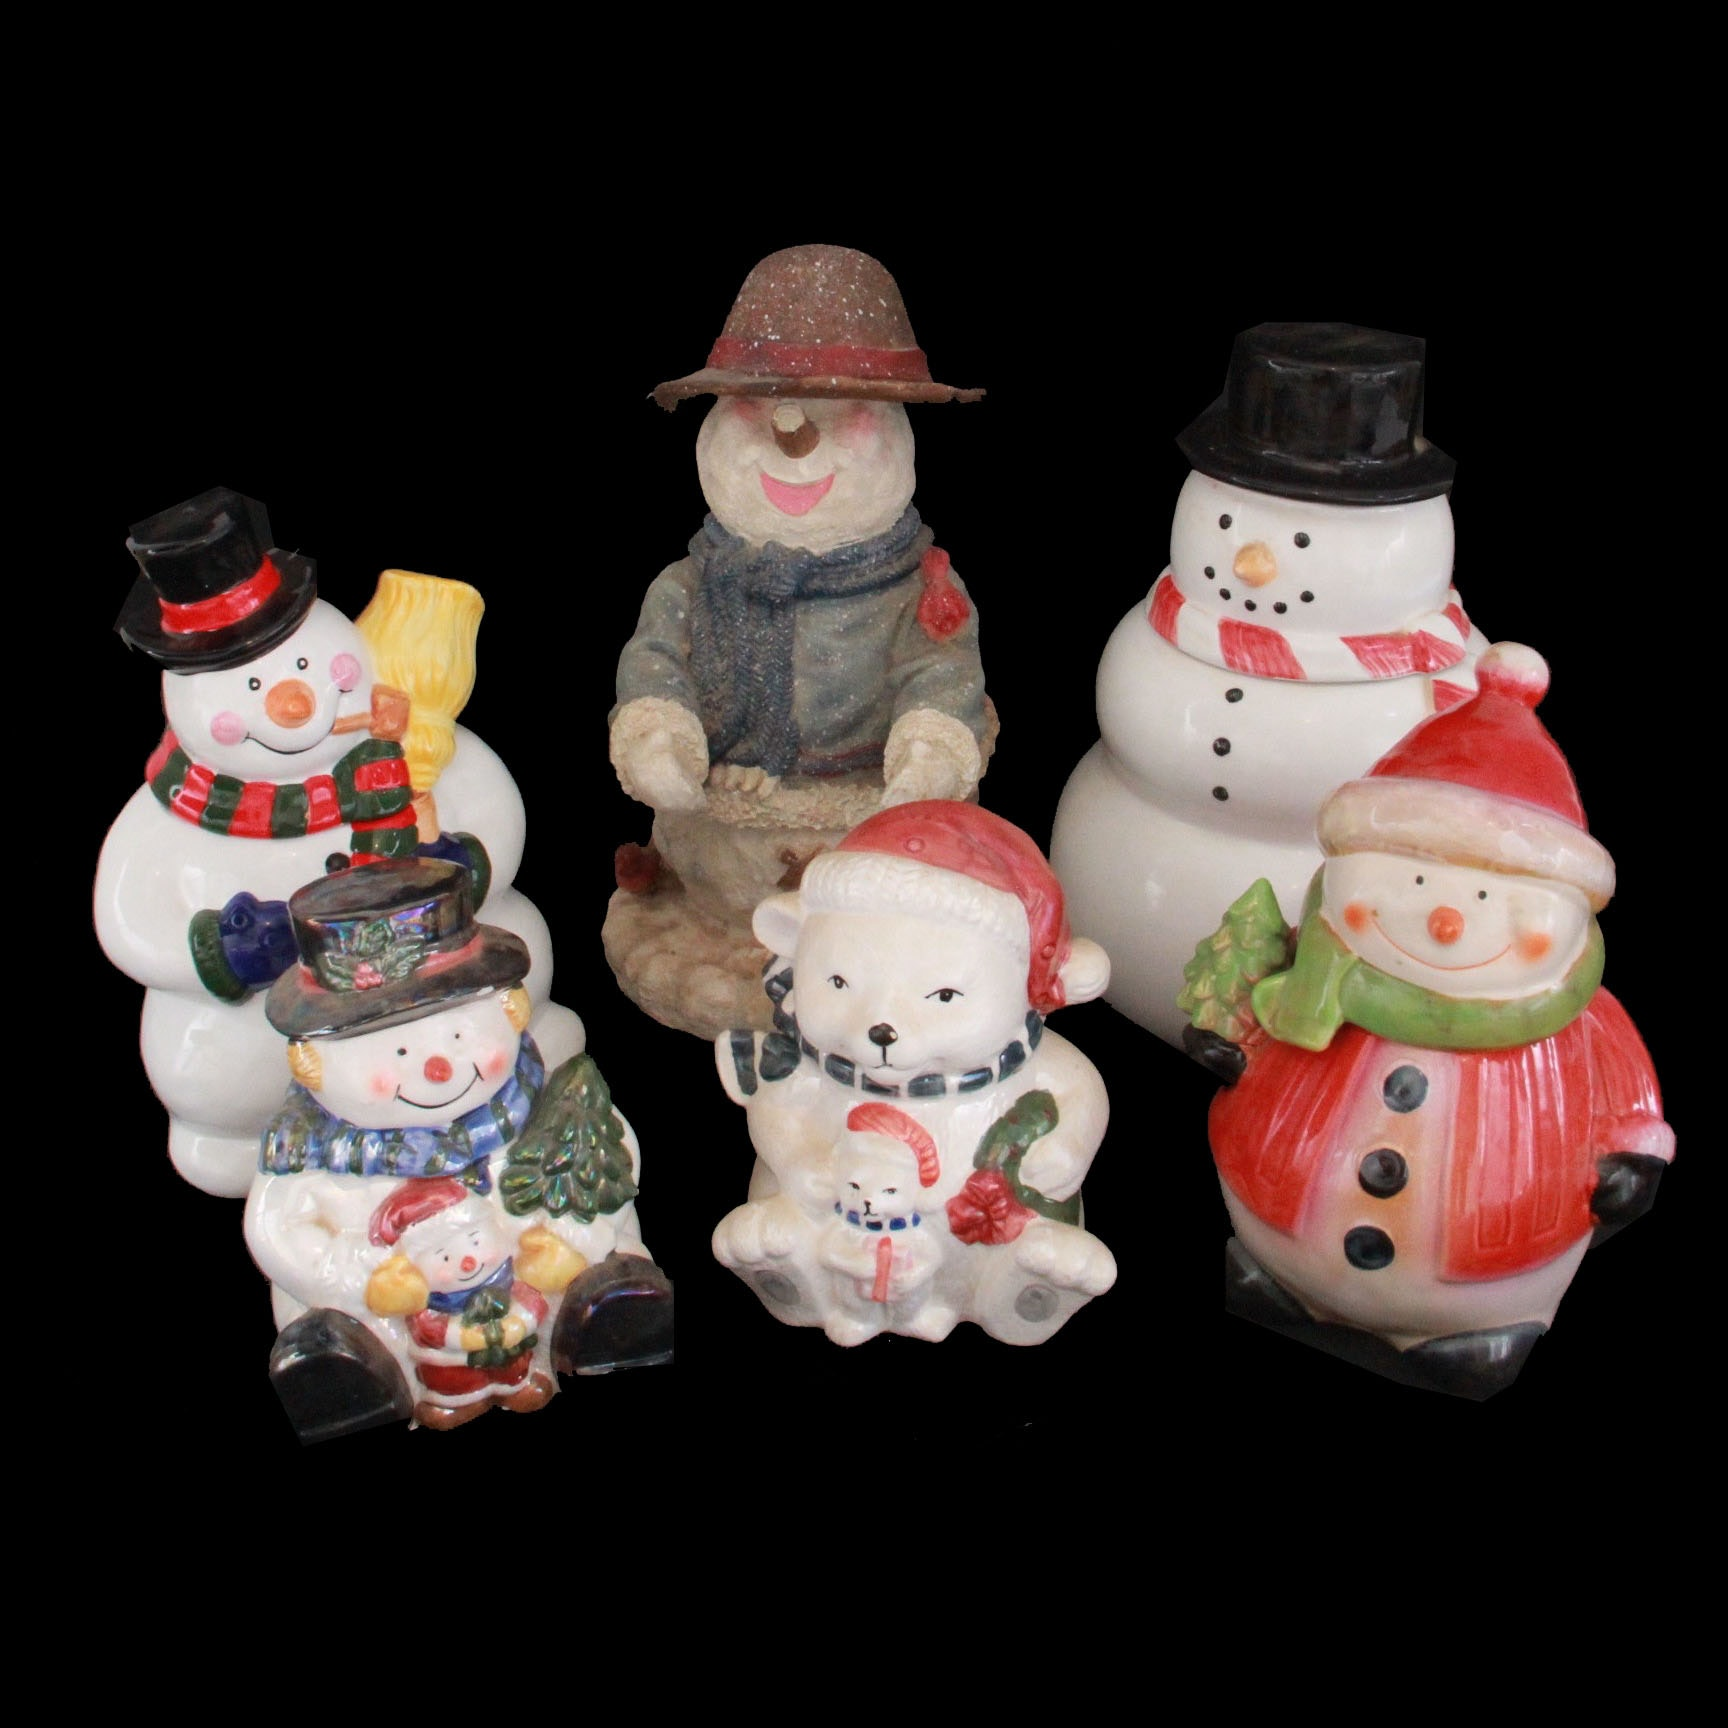 Snowman Cookie Jars and Decor